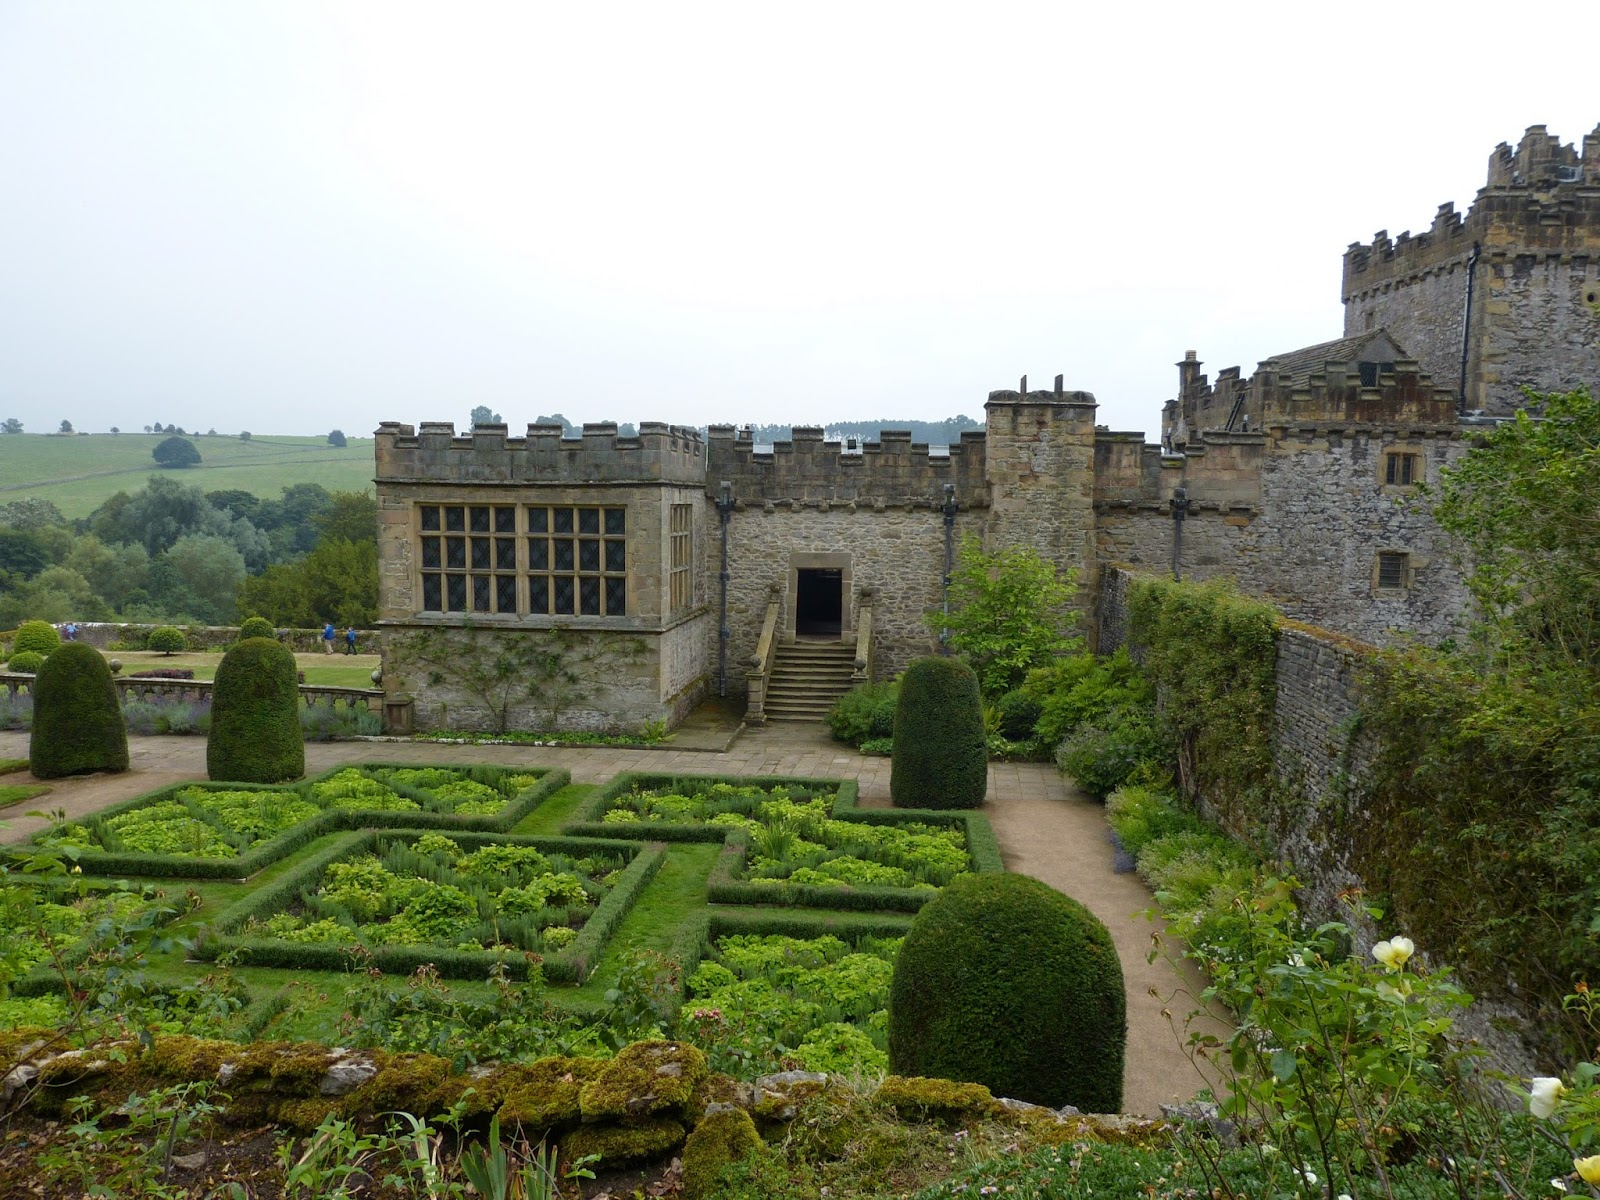 Haddon Hall from the gardens